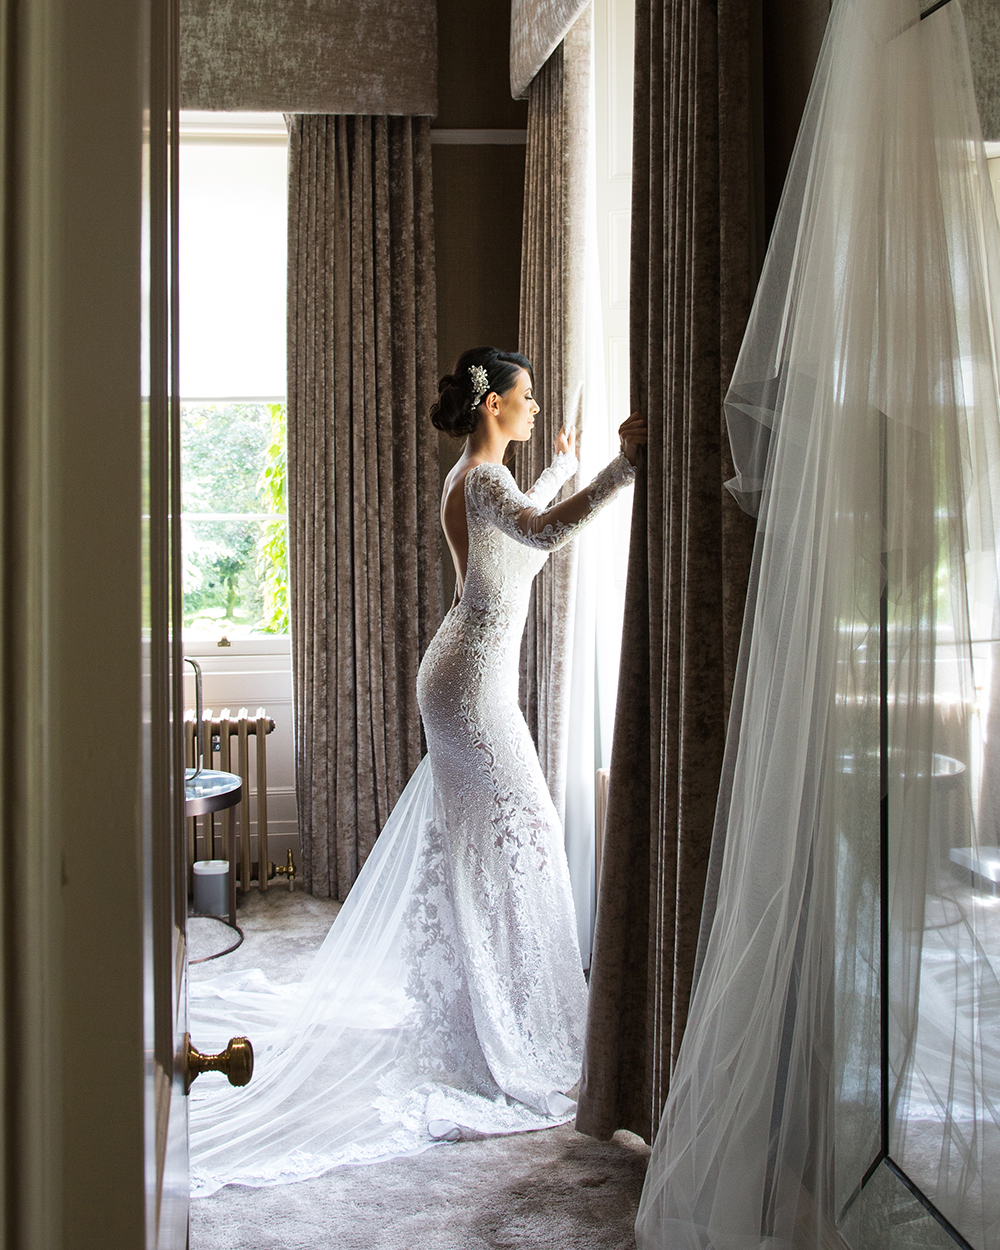 getting ready - Julie Lamont wedding at Carlowrie Castle